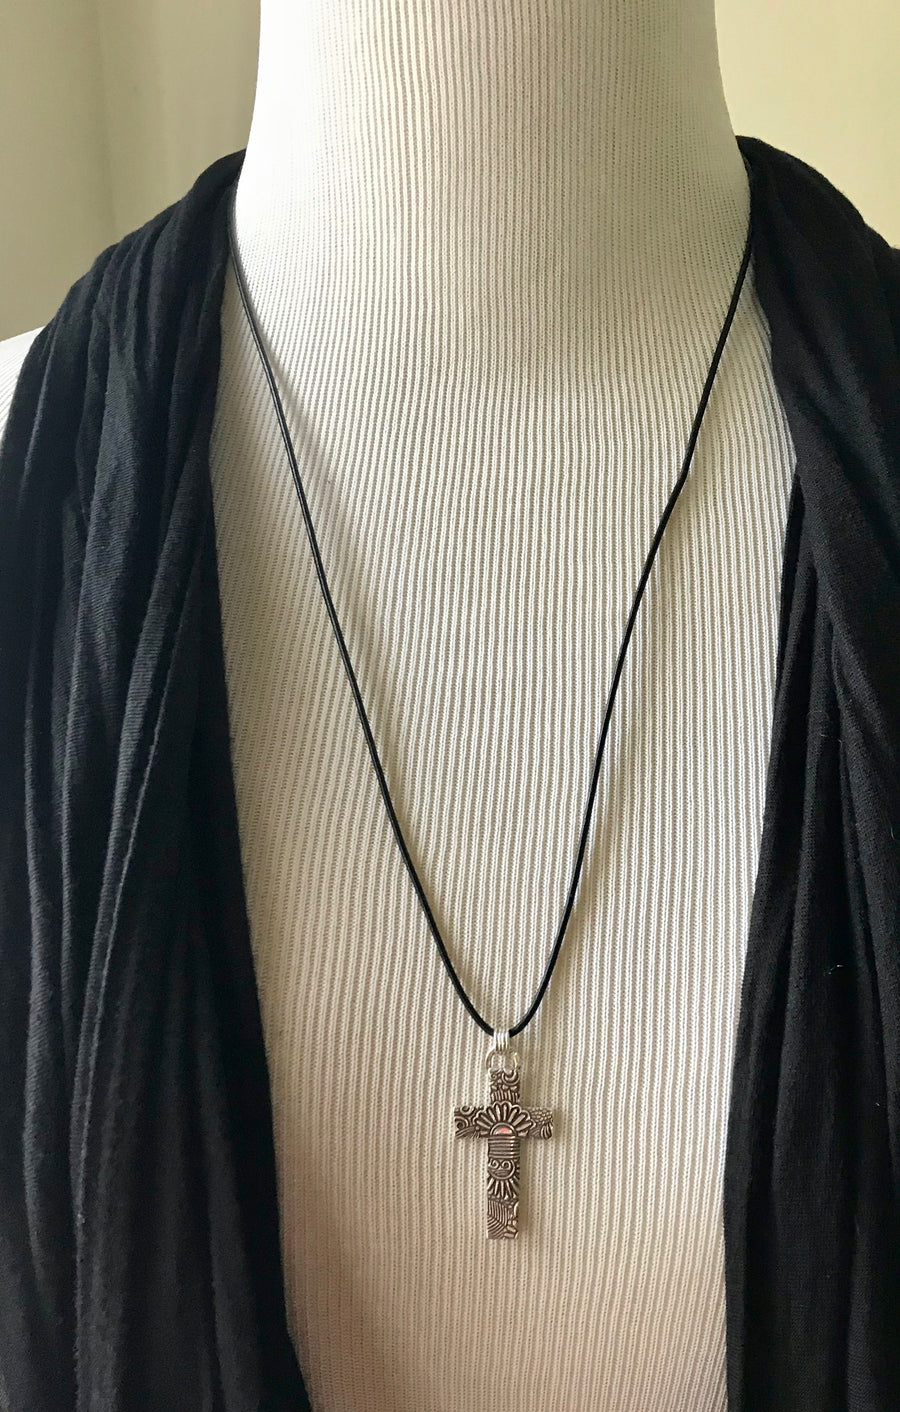 Large Silver Adjustable Length Sunrise Cross on Black Leather Cord